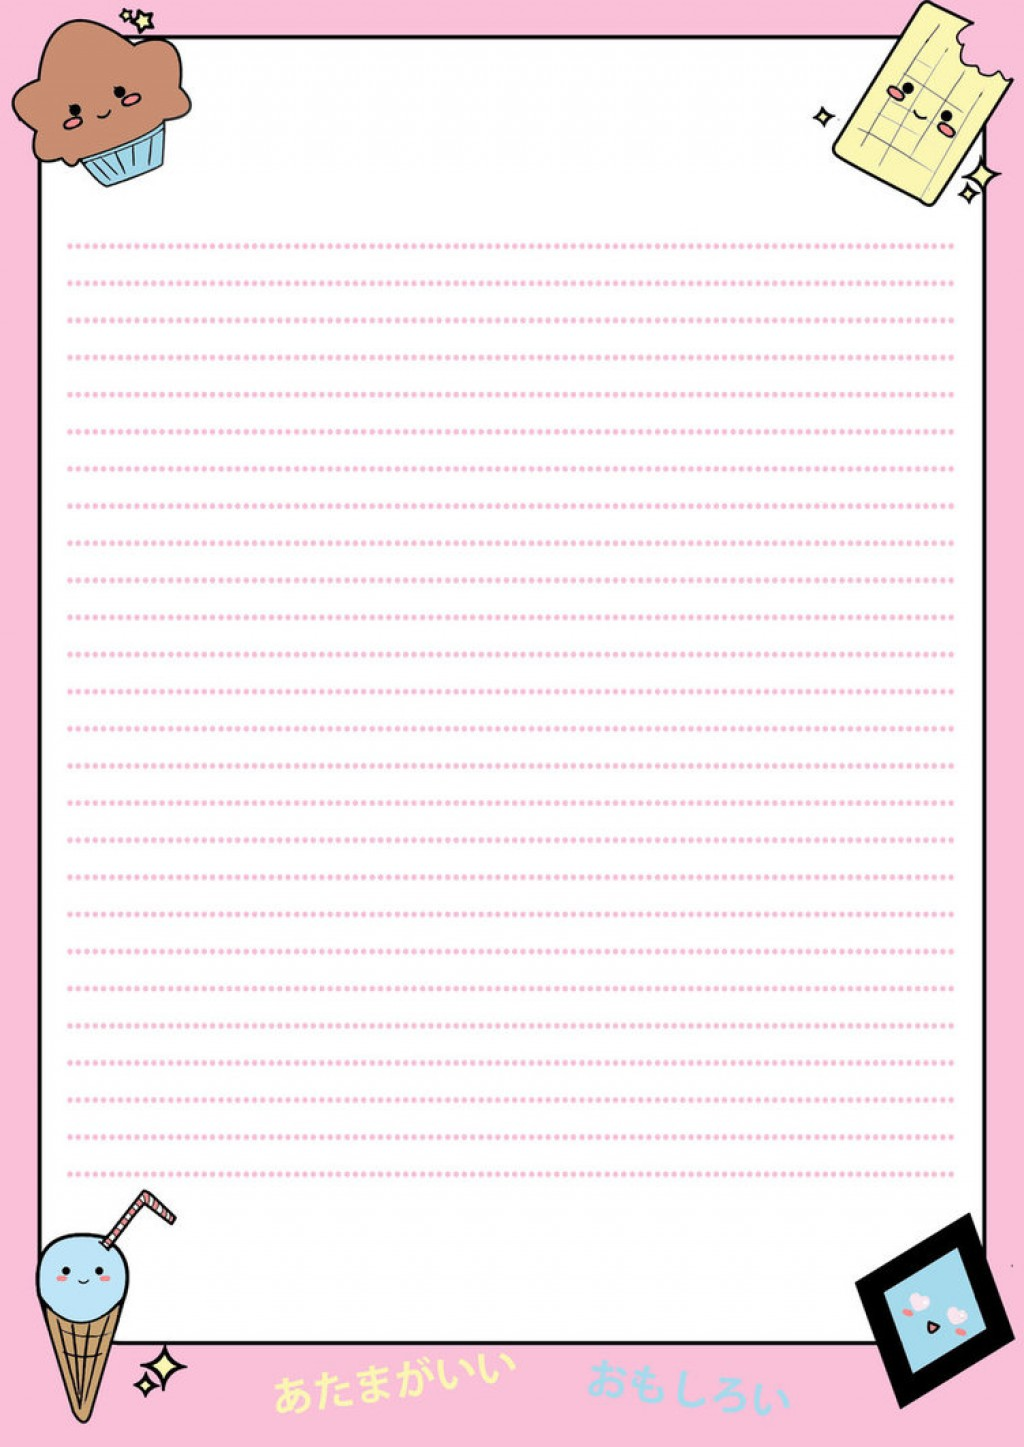 003 Custom Essay Order Example Writing Paper Letter Of Write My Cute 1 By Muddy Mudkip Frightening Large